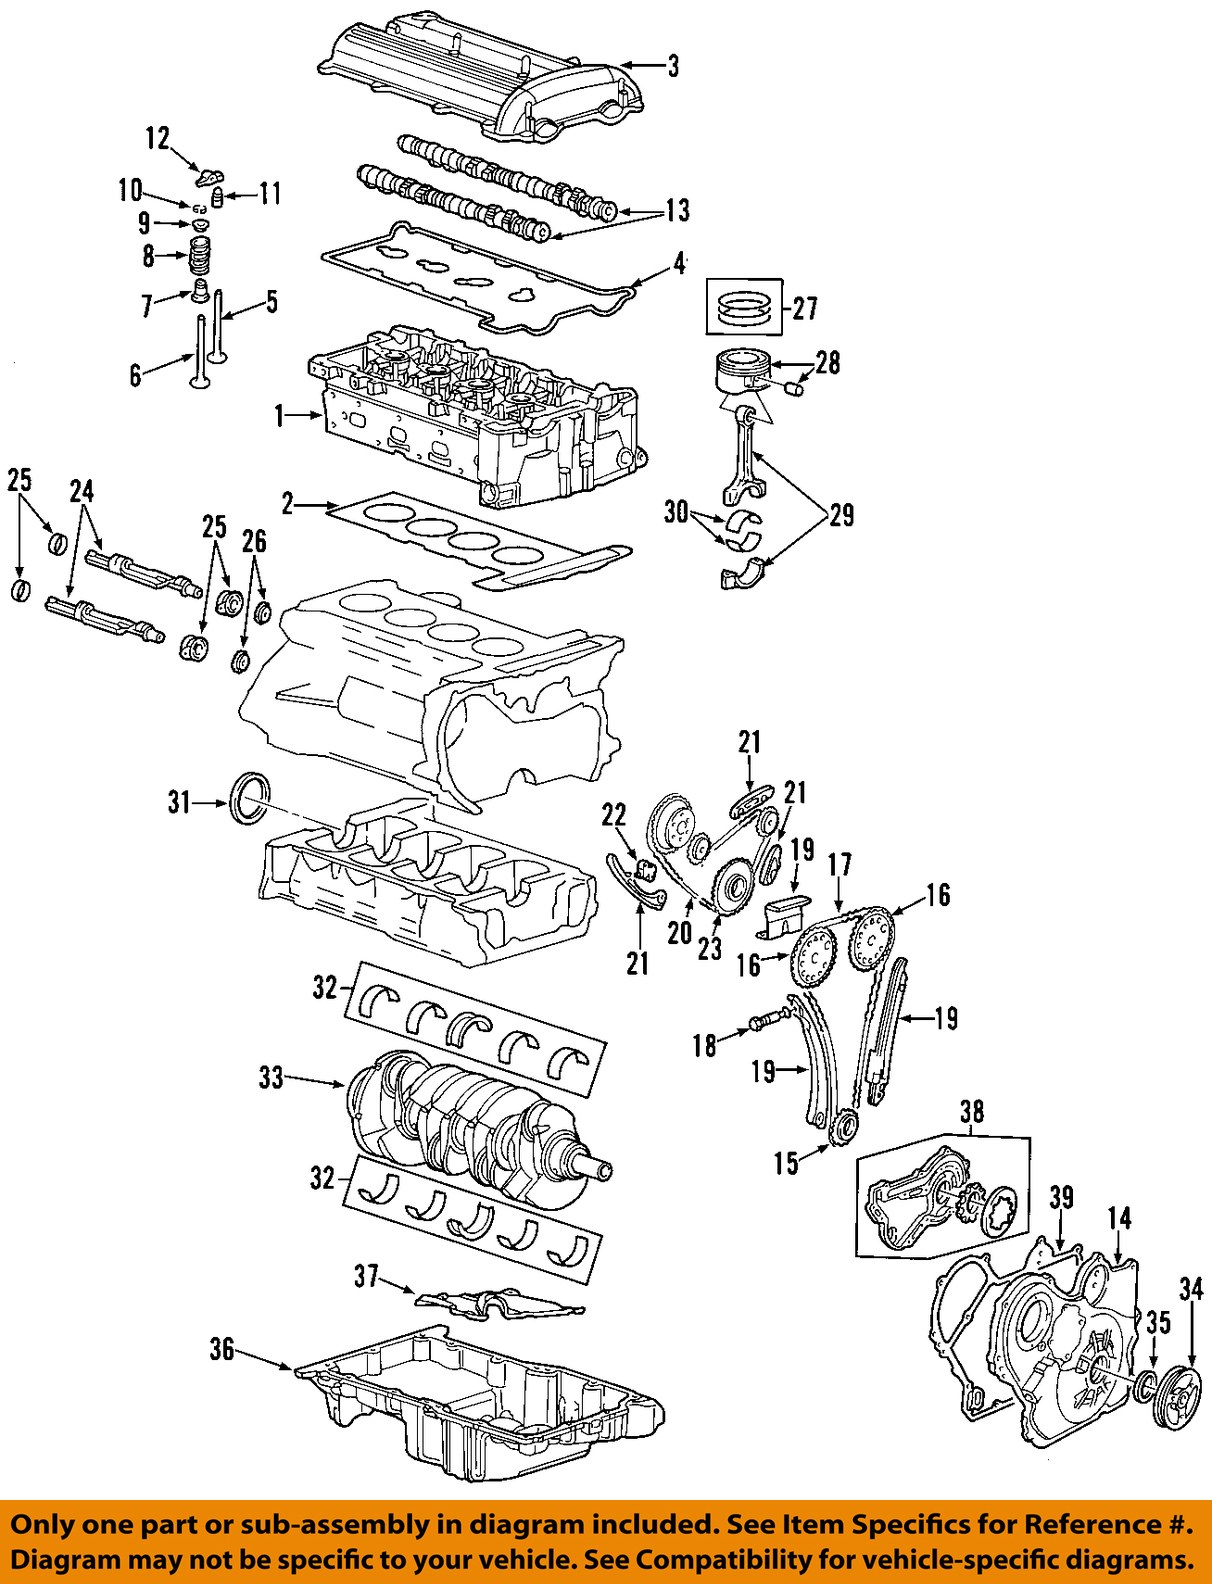 hight resolution of 2002 saturn vue 2 2 liter ecotec engine diagram wiring diagrams saturn 2 2 engine diagram